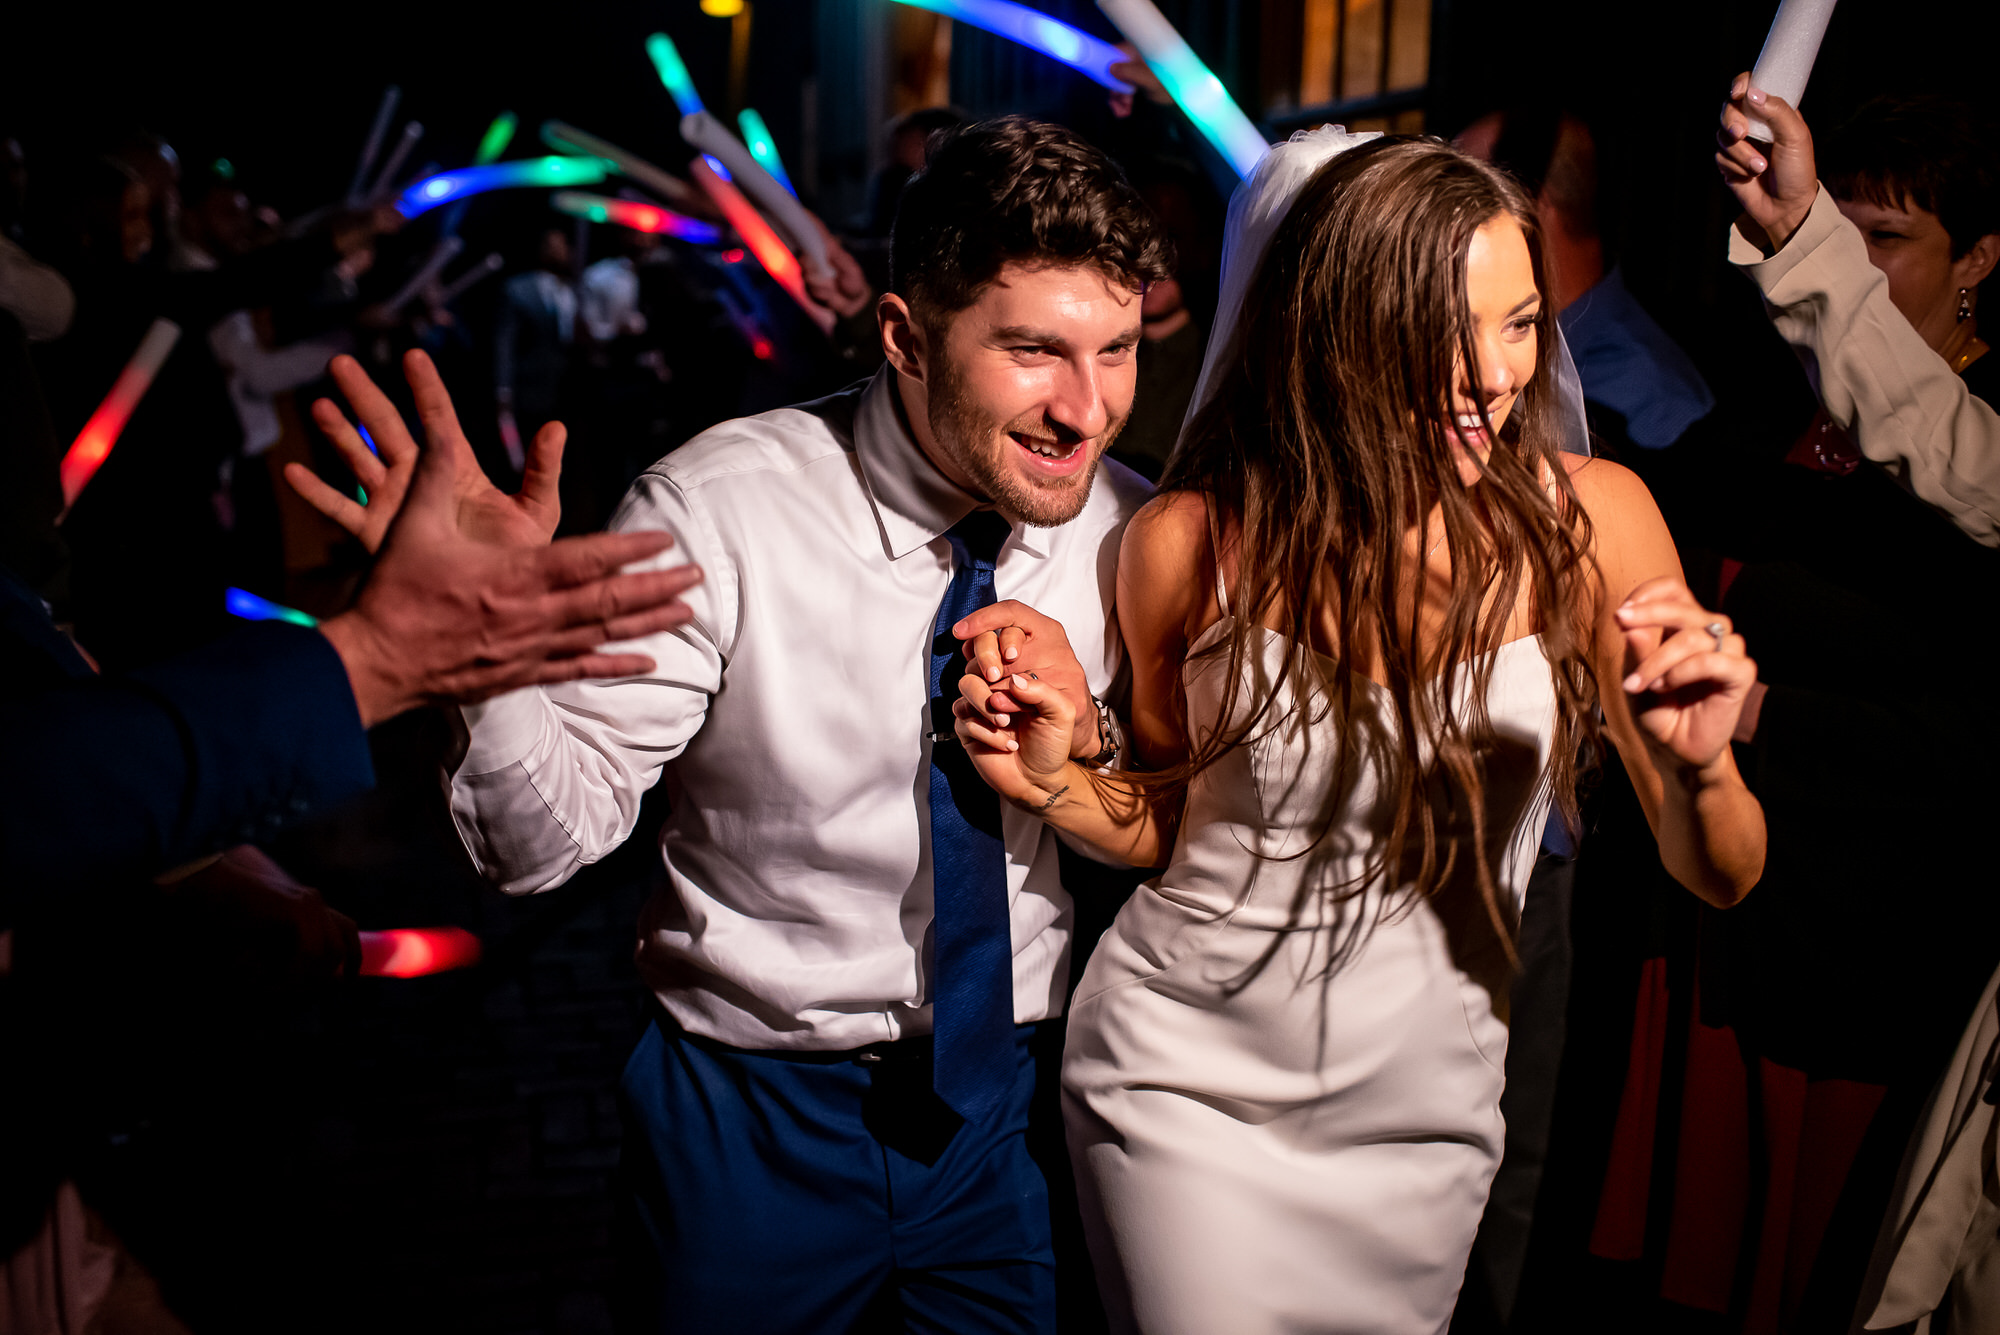 Happyouple leaving dance floor - photo by Tyler Wirken